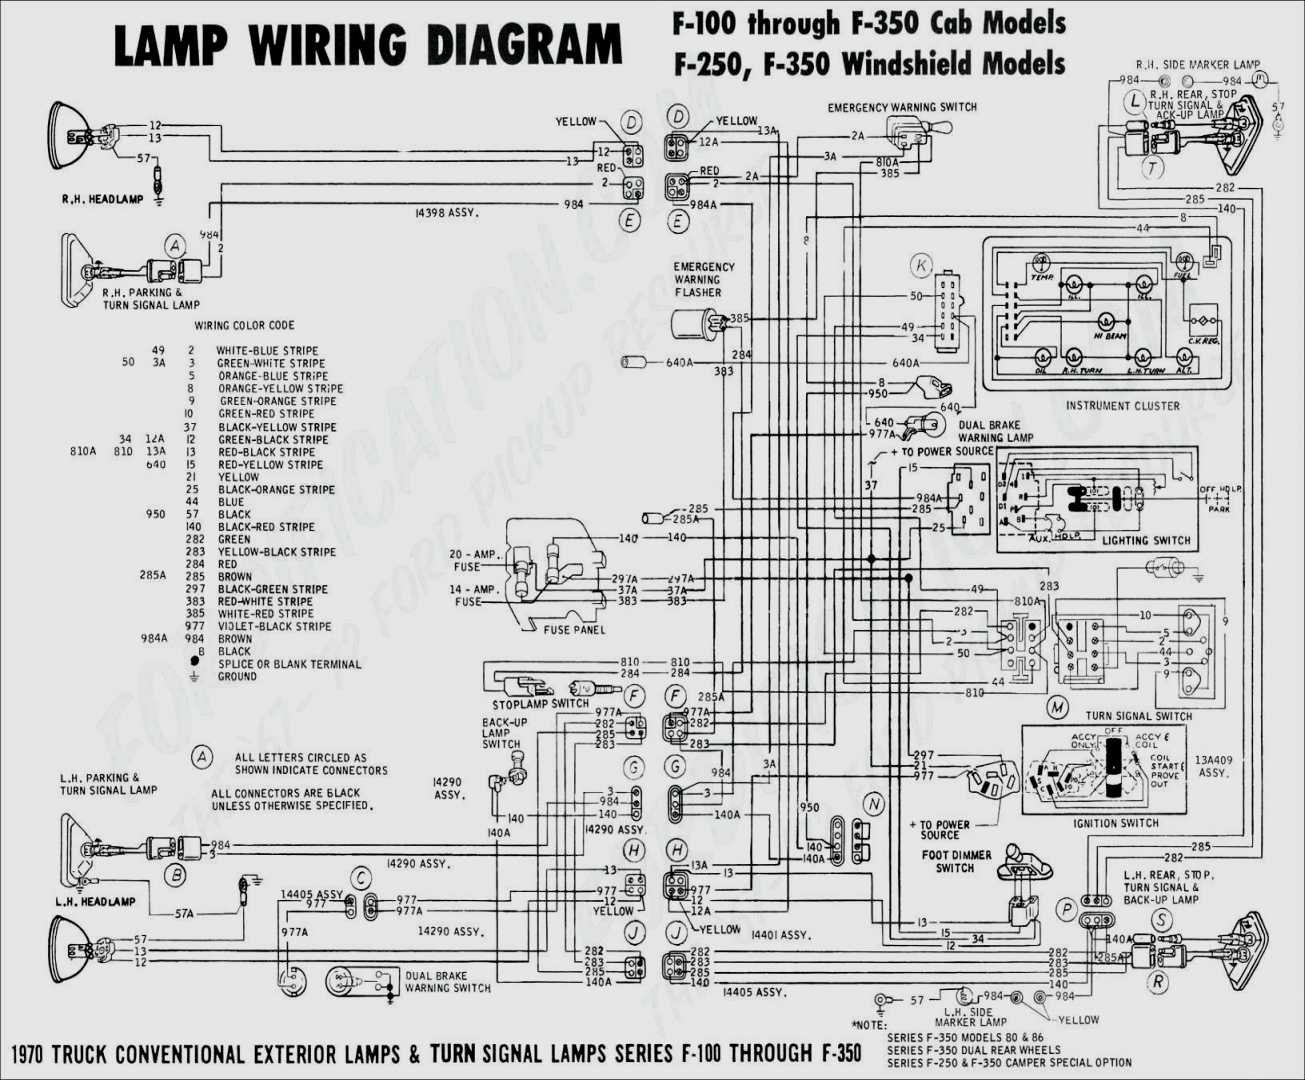 Ford Trailer Wiring Diagram 7 Way - Wiring Diagrams - Ford Trailer Wiring Diagram 7 Way